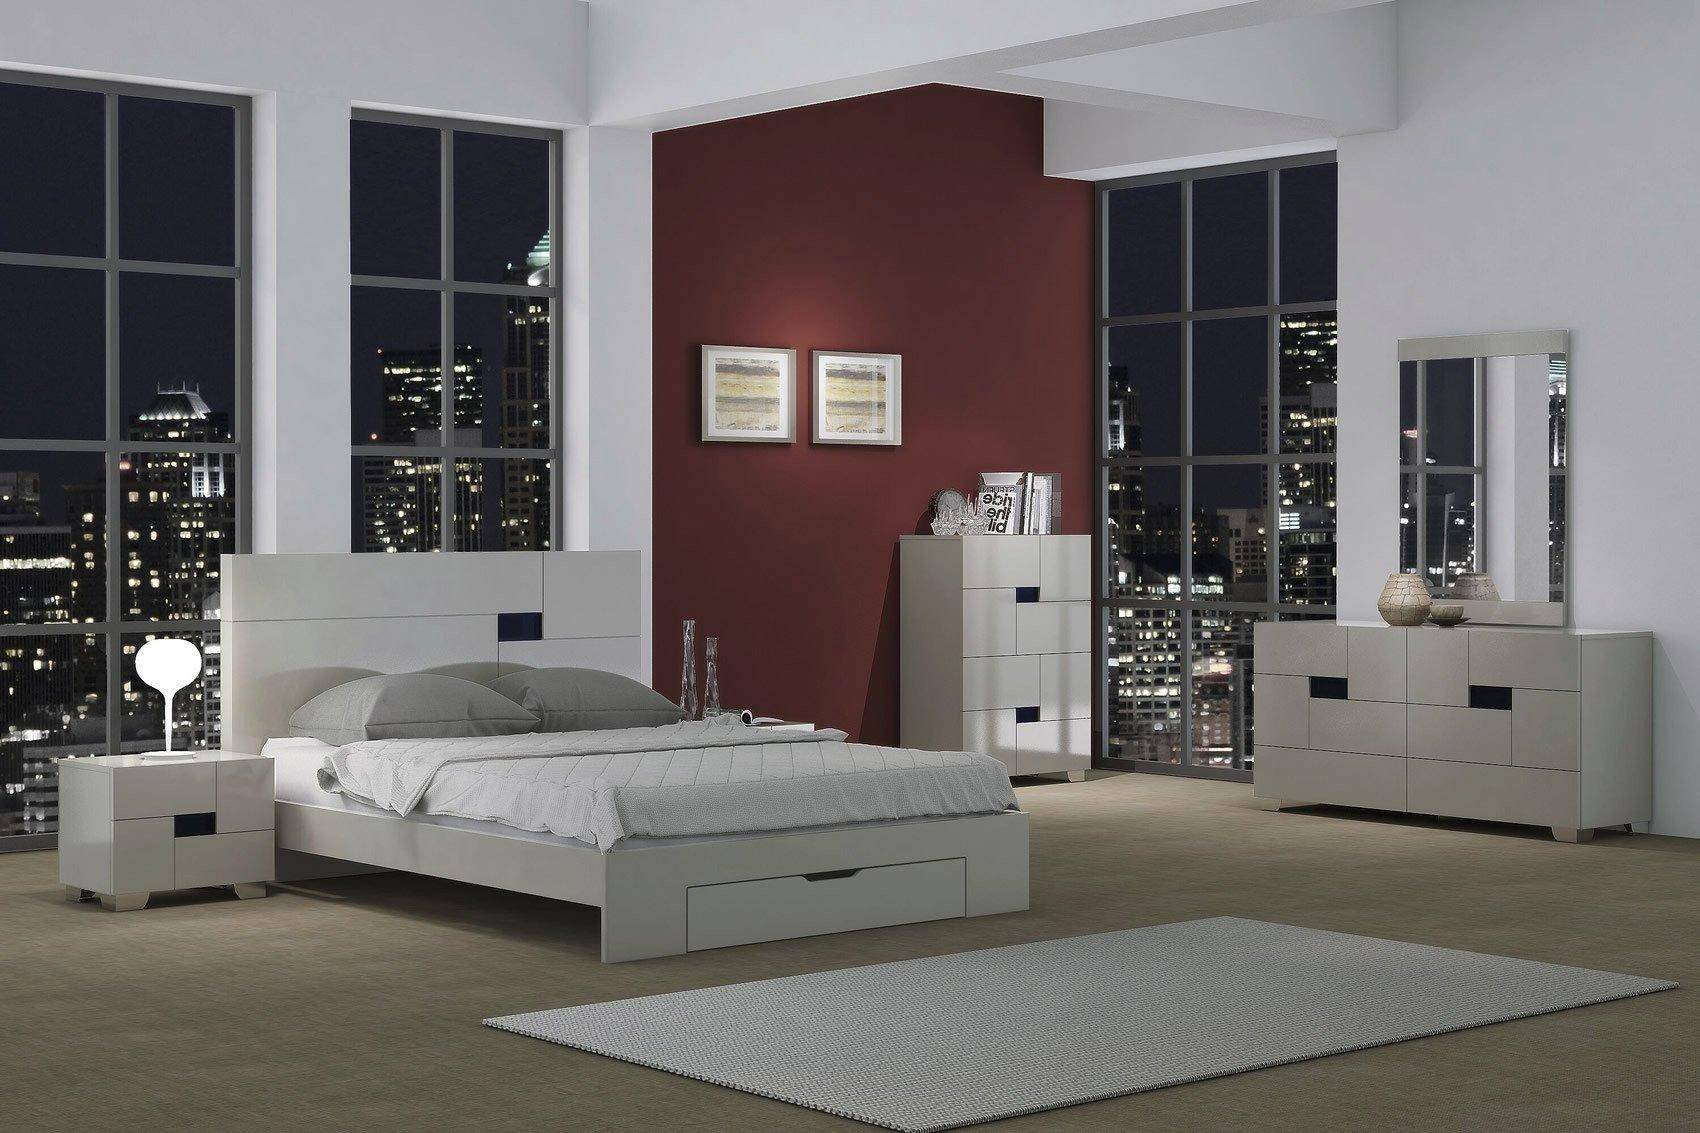 Gray King Bedroom Set Luxury Contemporary Light Gray Lacquer Storage Queen Bedroom Set